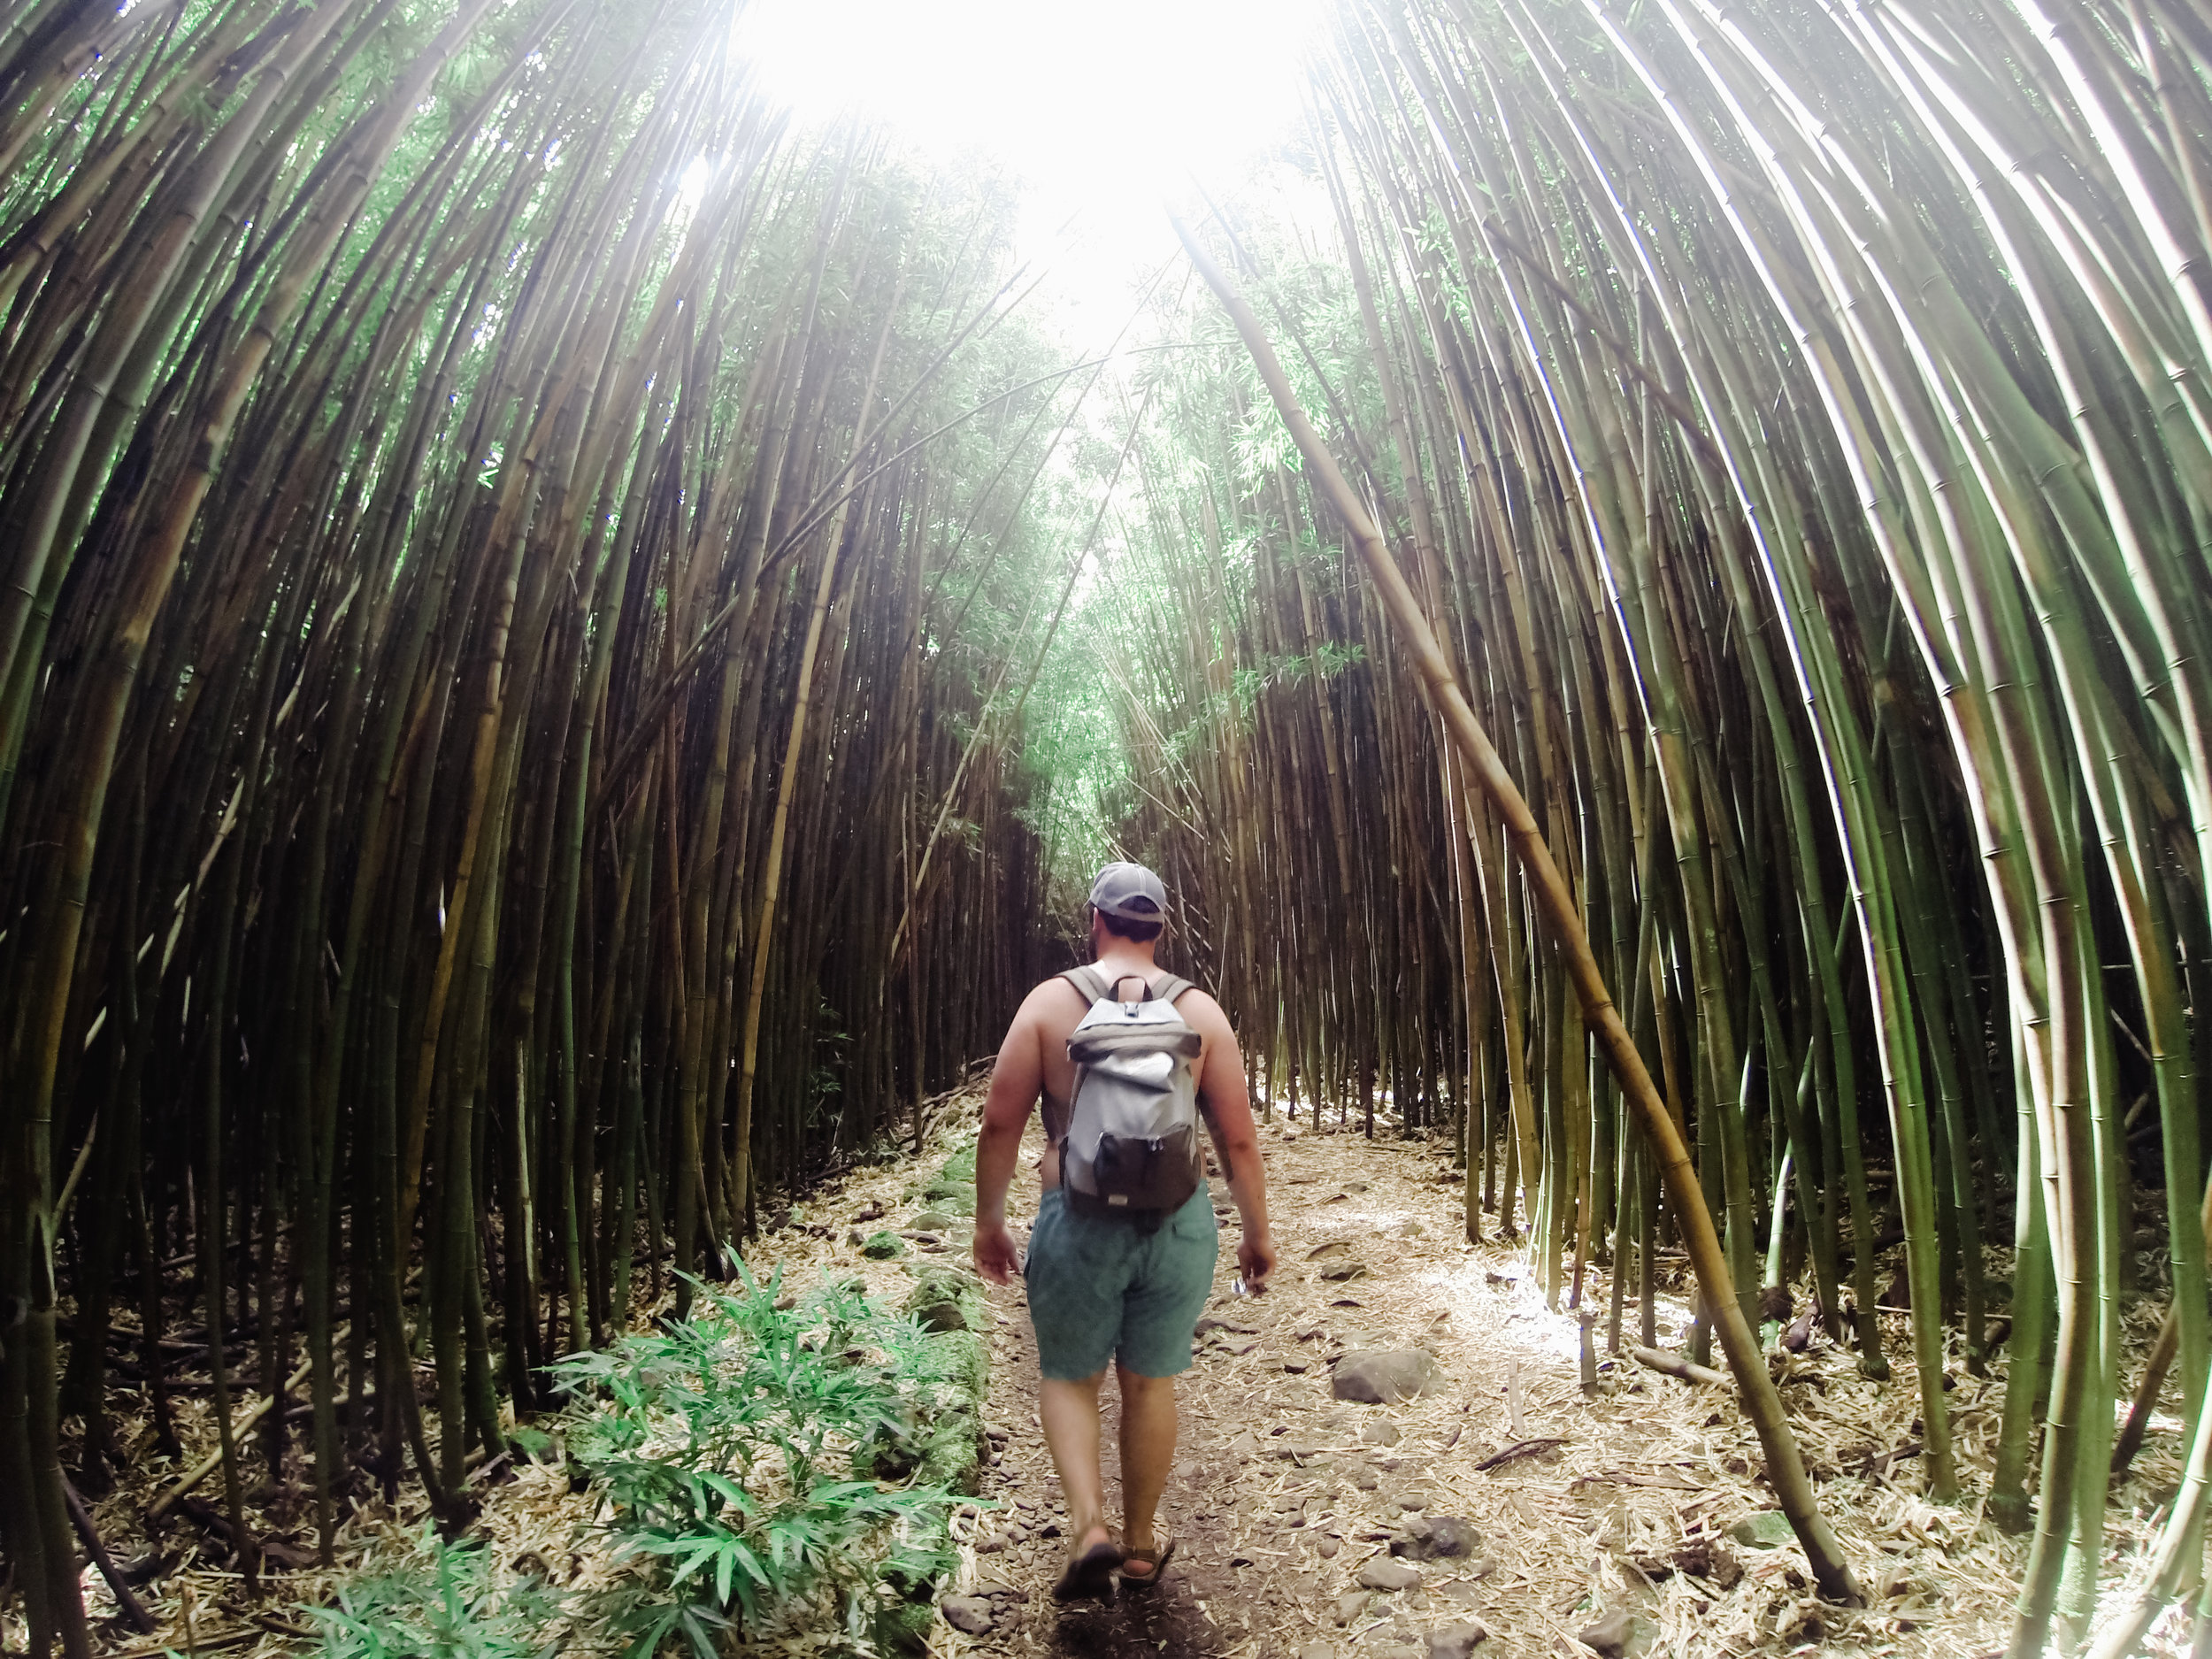 Day 1: The Road to Hana & Haleakala National Park - Swimming holes, bamboo forests, and waterfalls